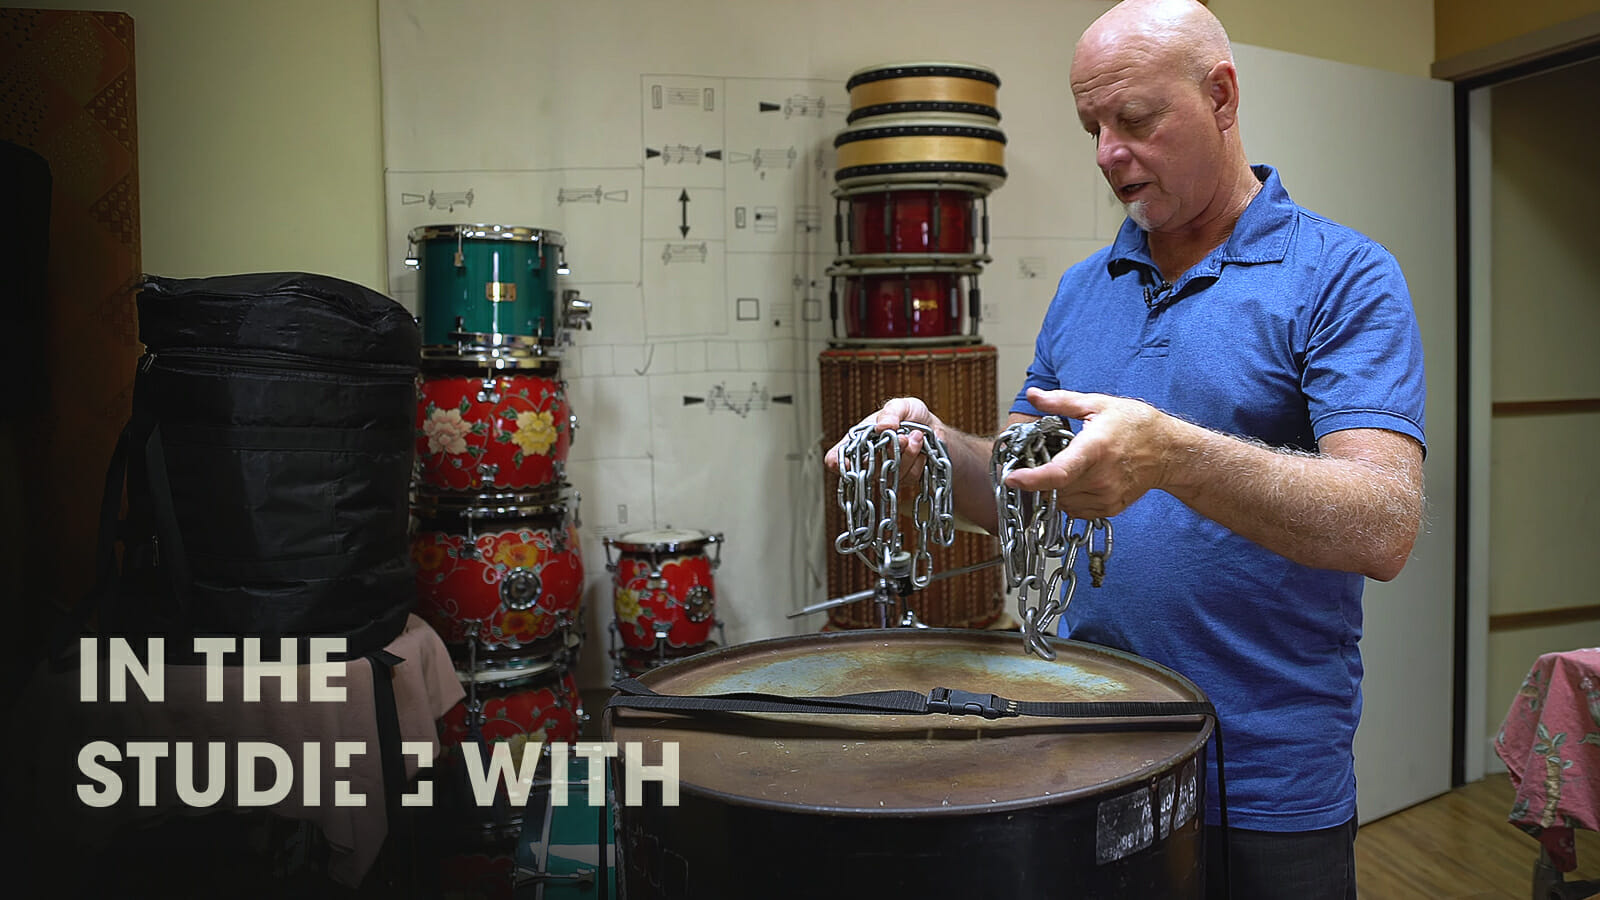 Touring the studio of M.B. Gordy, the famous percussionist behind Hollywood movie scores